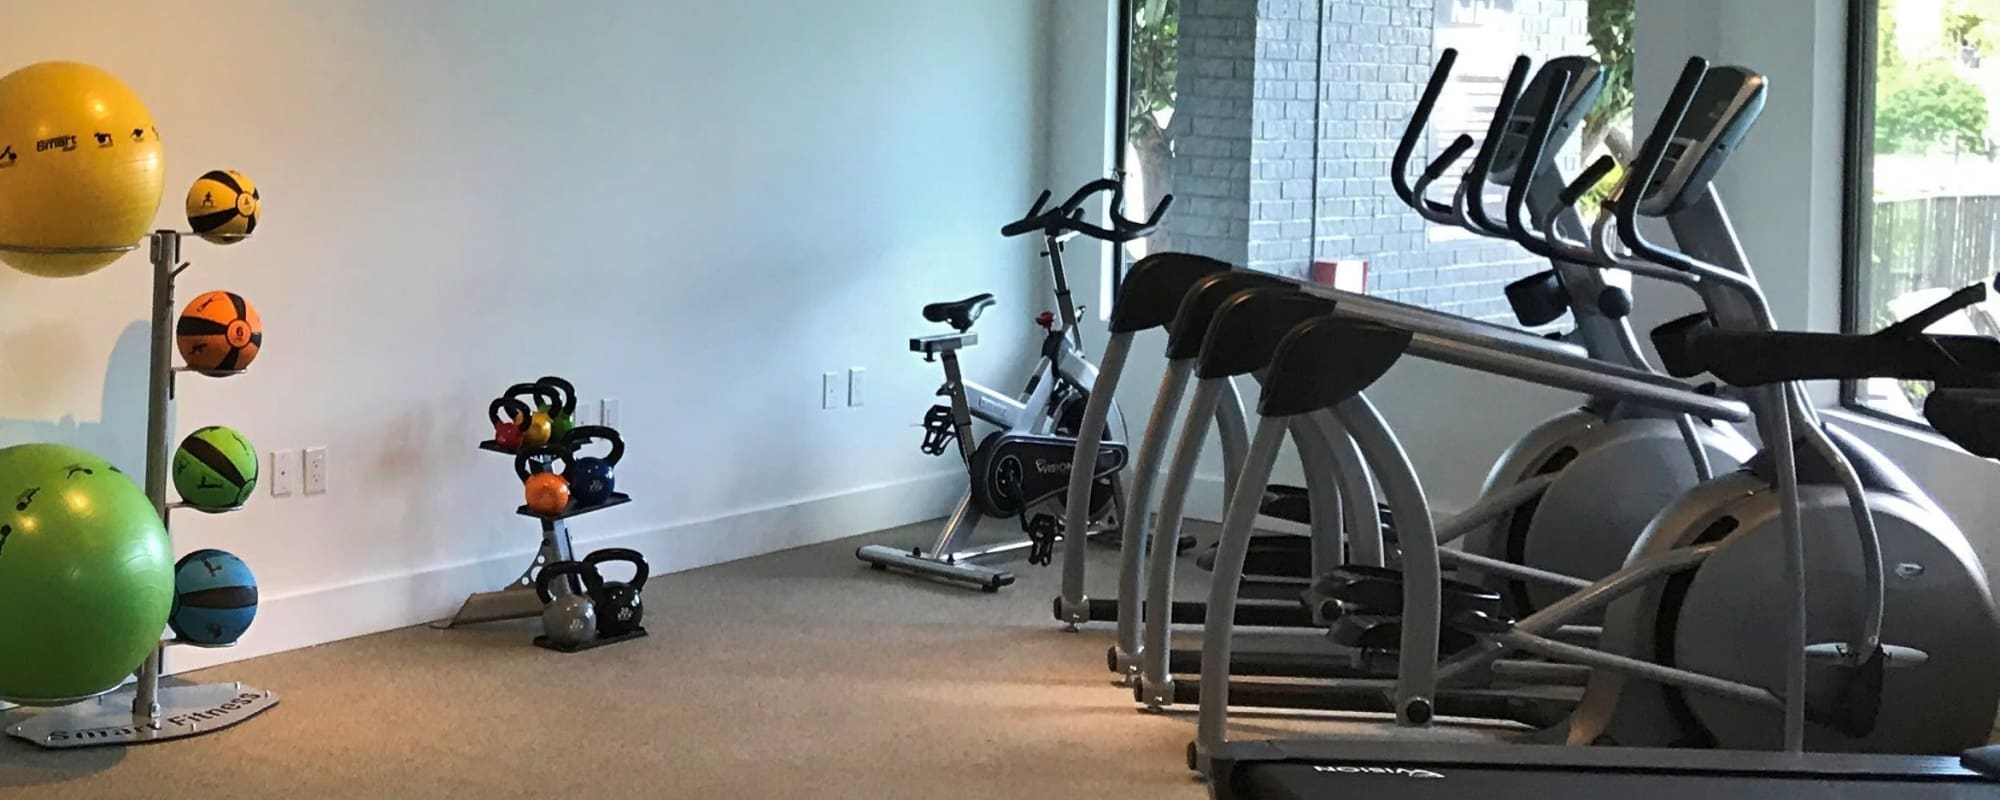 Fitness center at Collection at Overlook